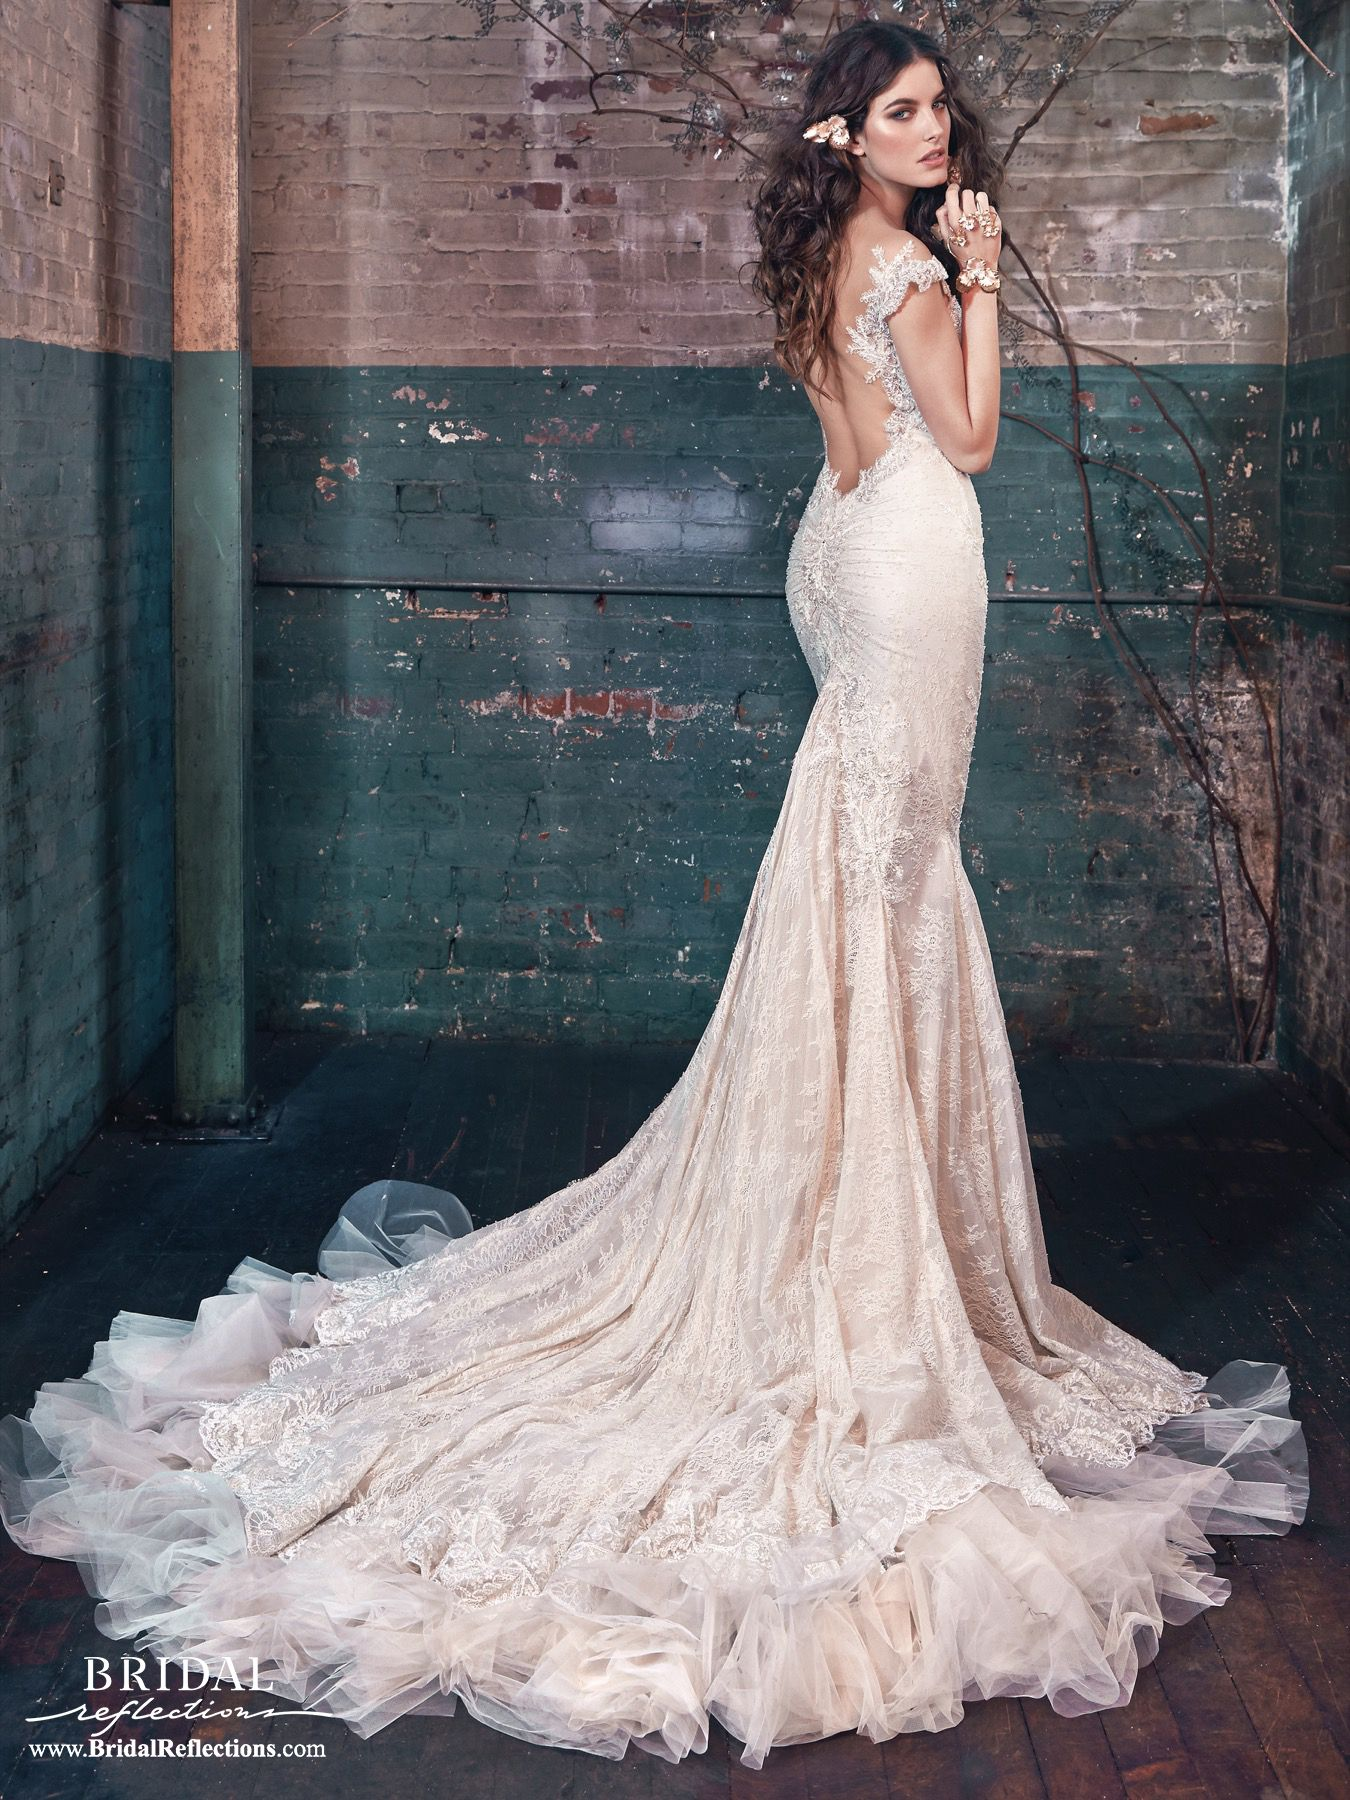 Galia lahav wedding dresses and bridal gowns wedding dresses